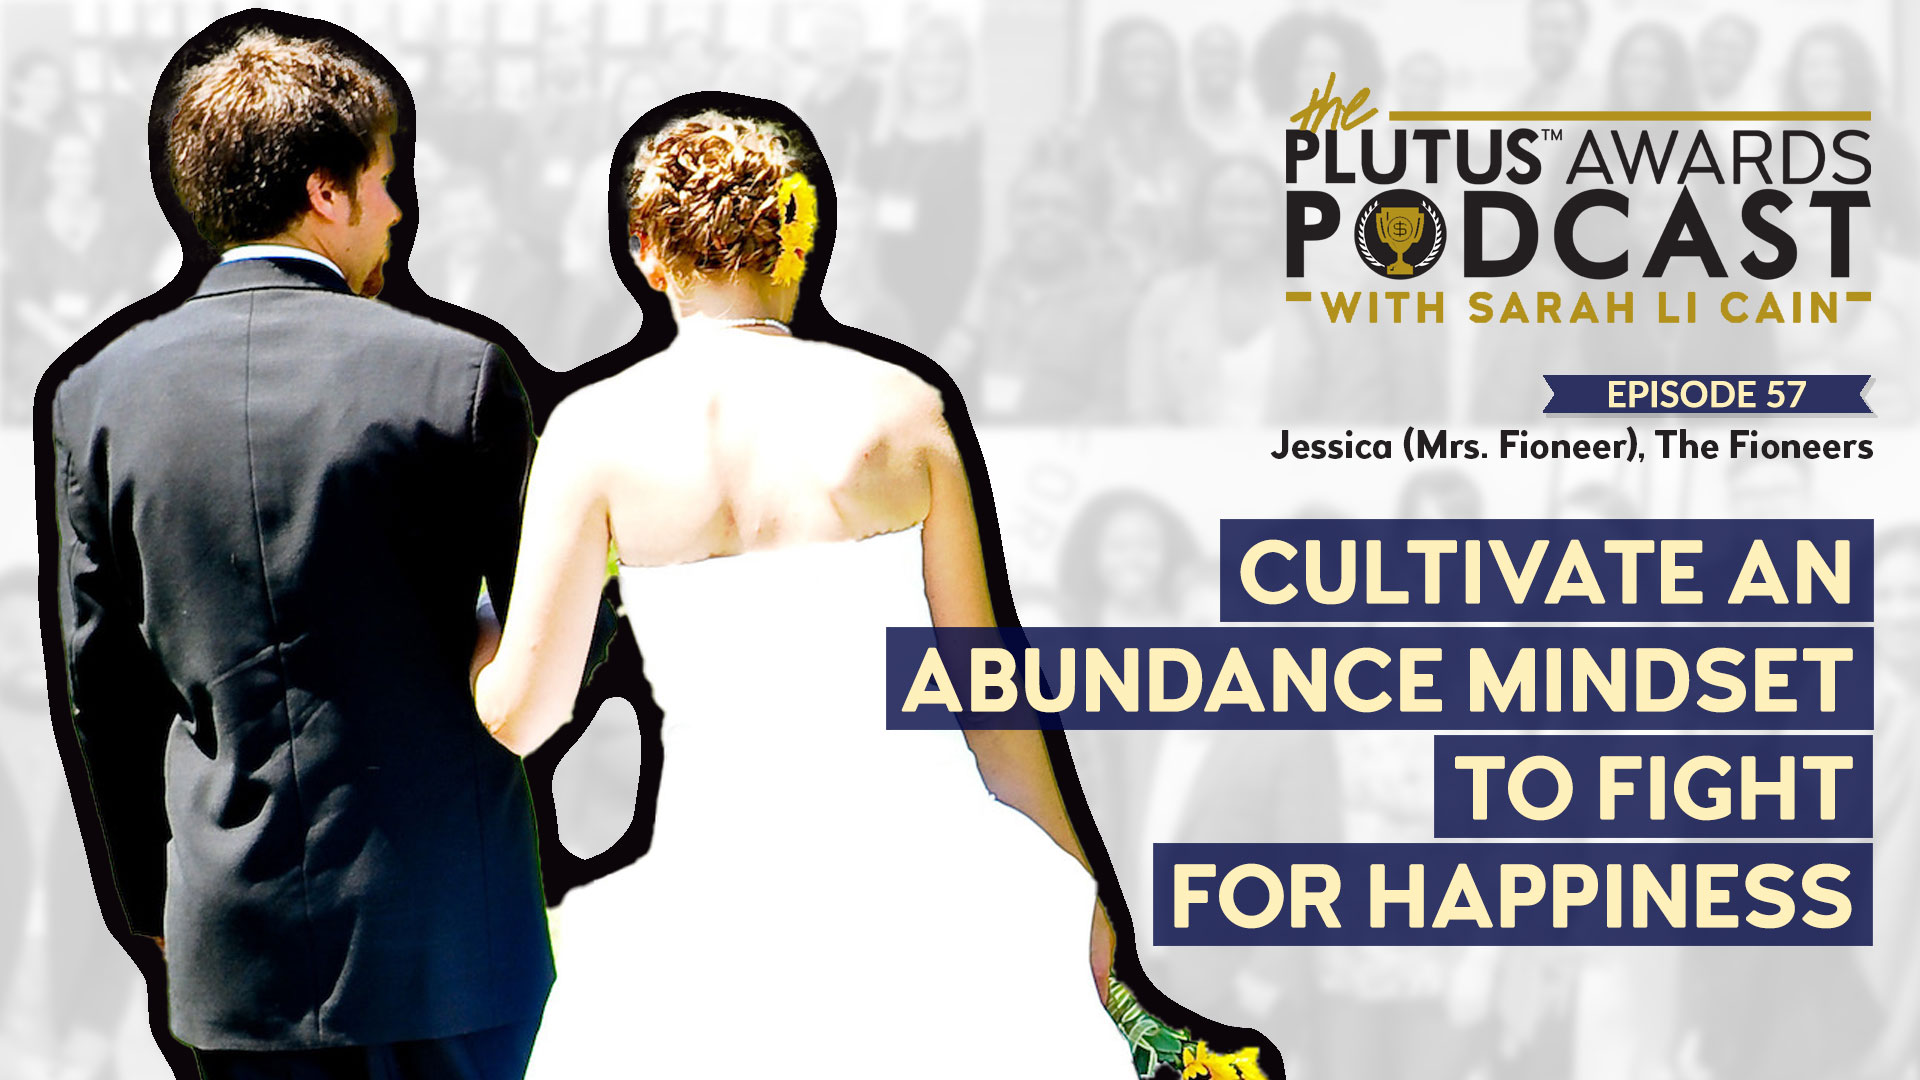 Plutus Awards Podcast - Jessica Fioneers - Featured Image